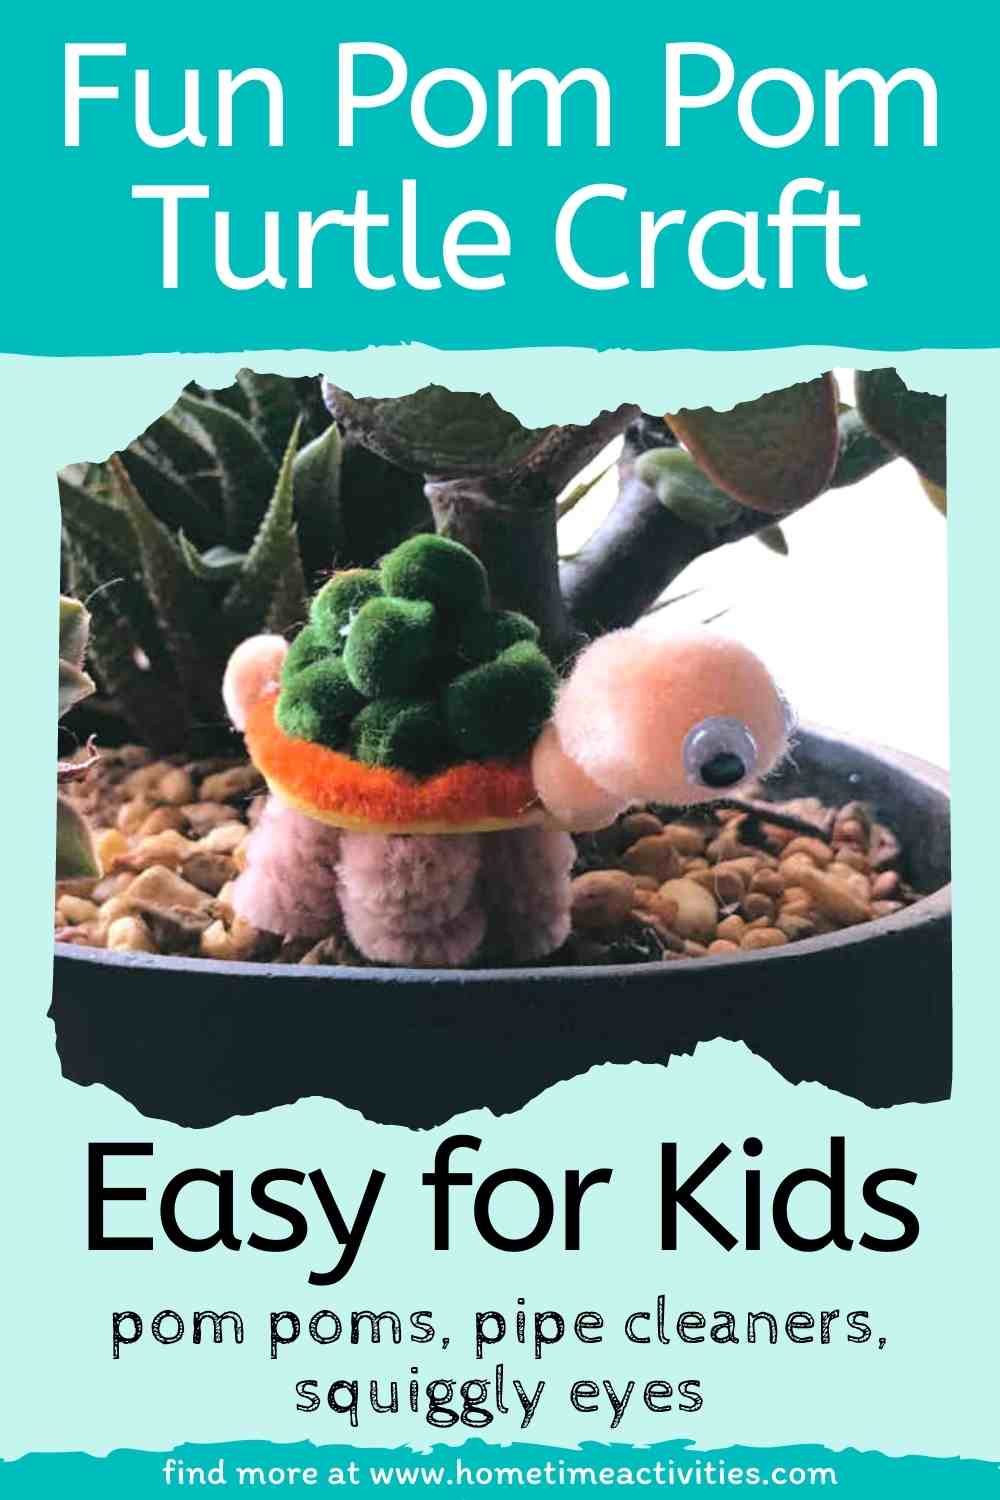 Cute Pom Pom Craft for Kids - Easy Turtle - with text showing finished turtle - This activity is for kids to learn about reptiles